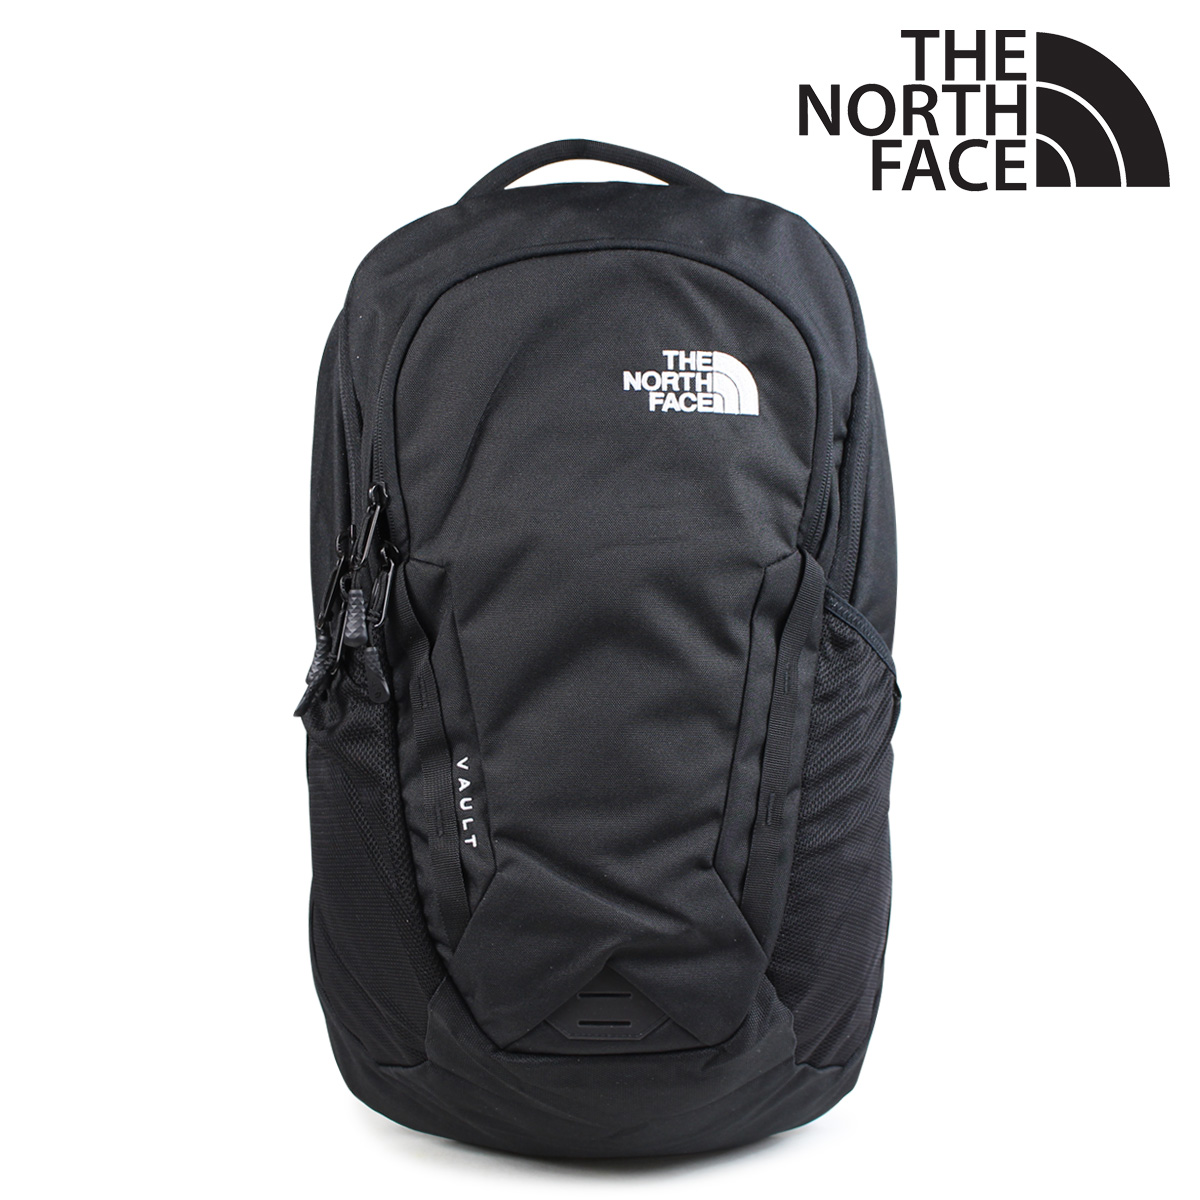 online store 2e2ab ce33e THE NORTH FACE North Face rucksack men backpack VAULT T93KV9JK3 black black